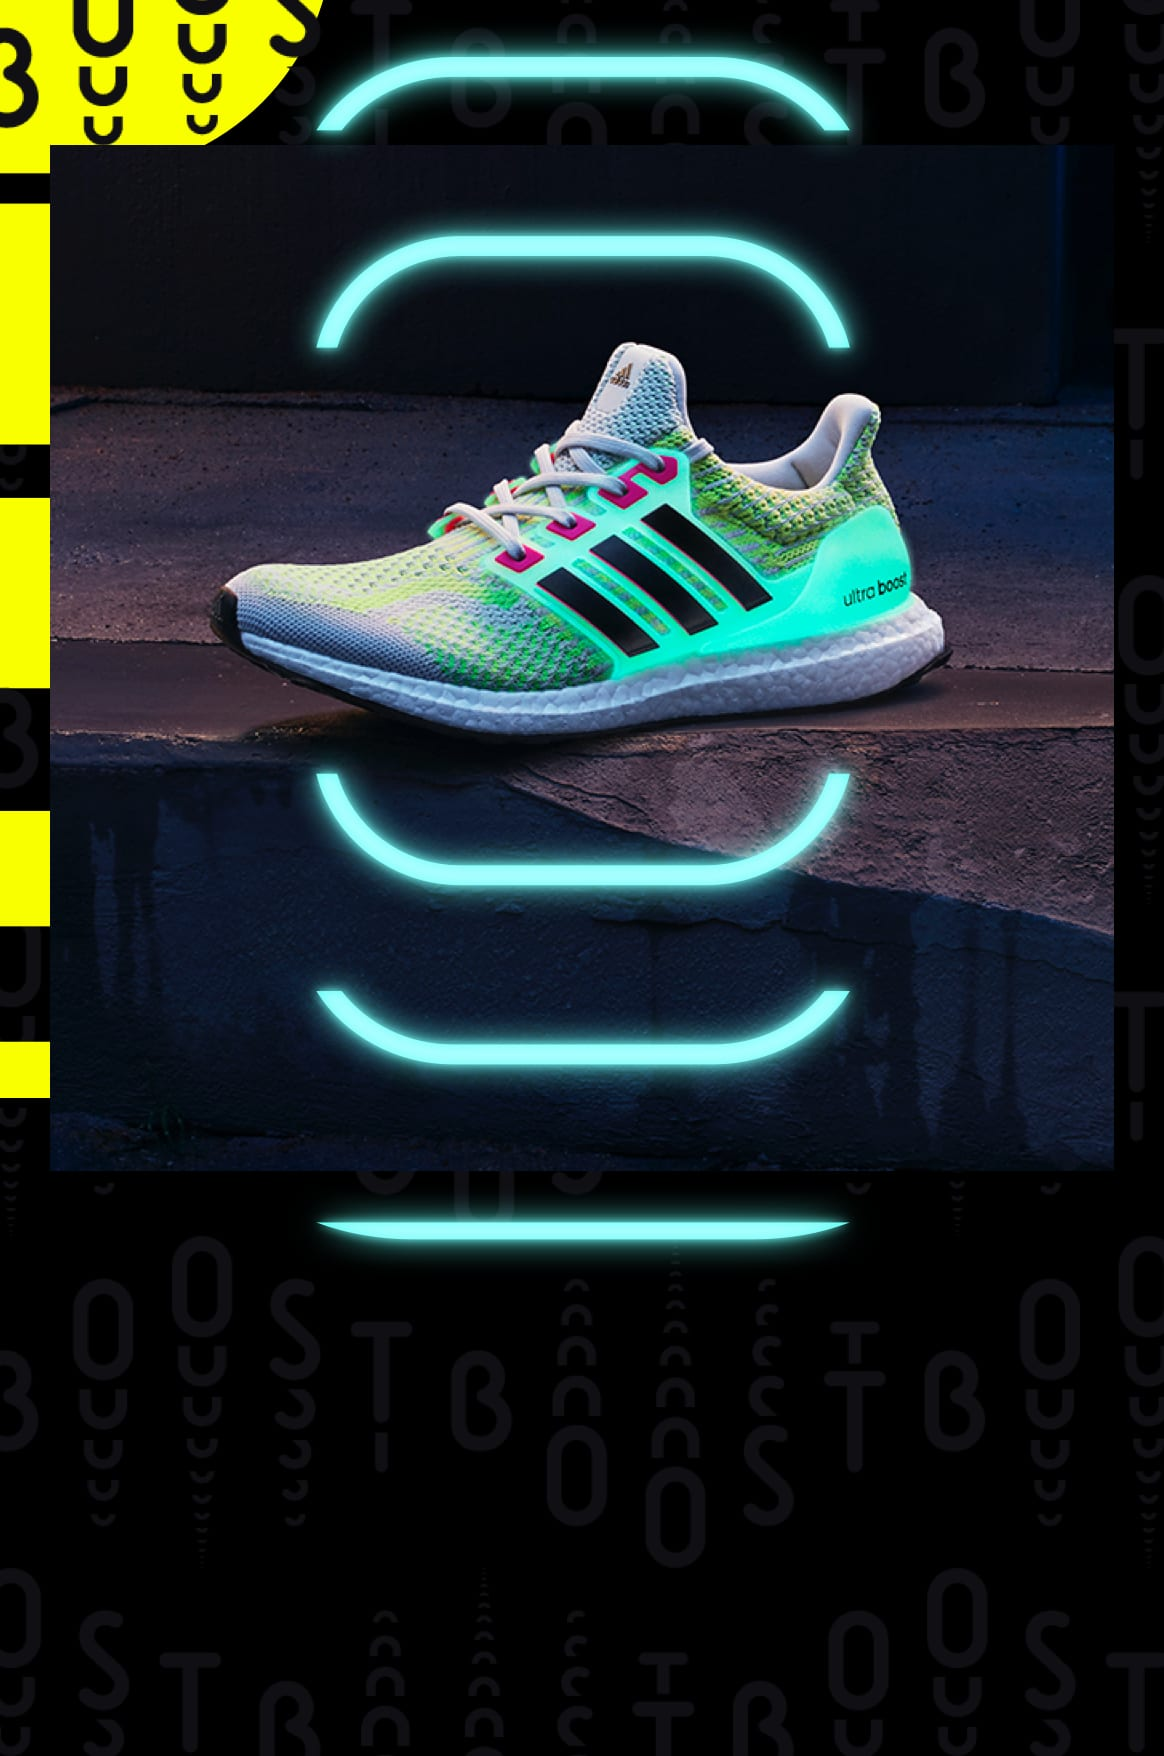 Ultraboost DNA Glow in the Dark, performance running and lifestyle shoe, glowing in the dark in urban setting